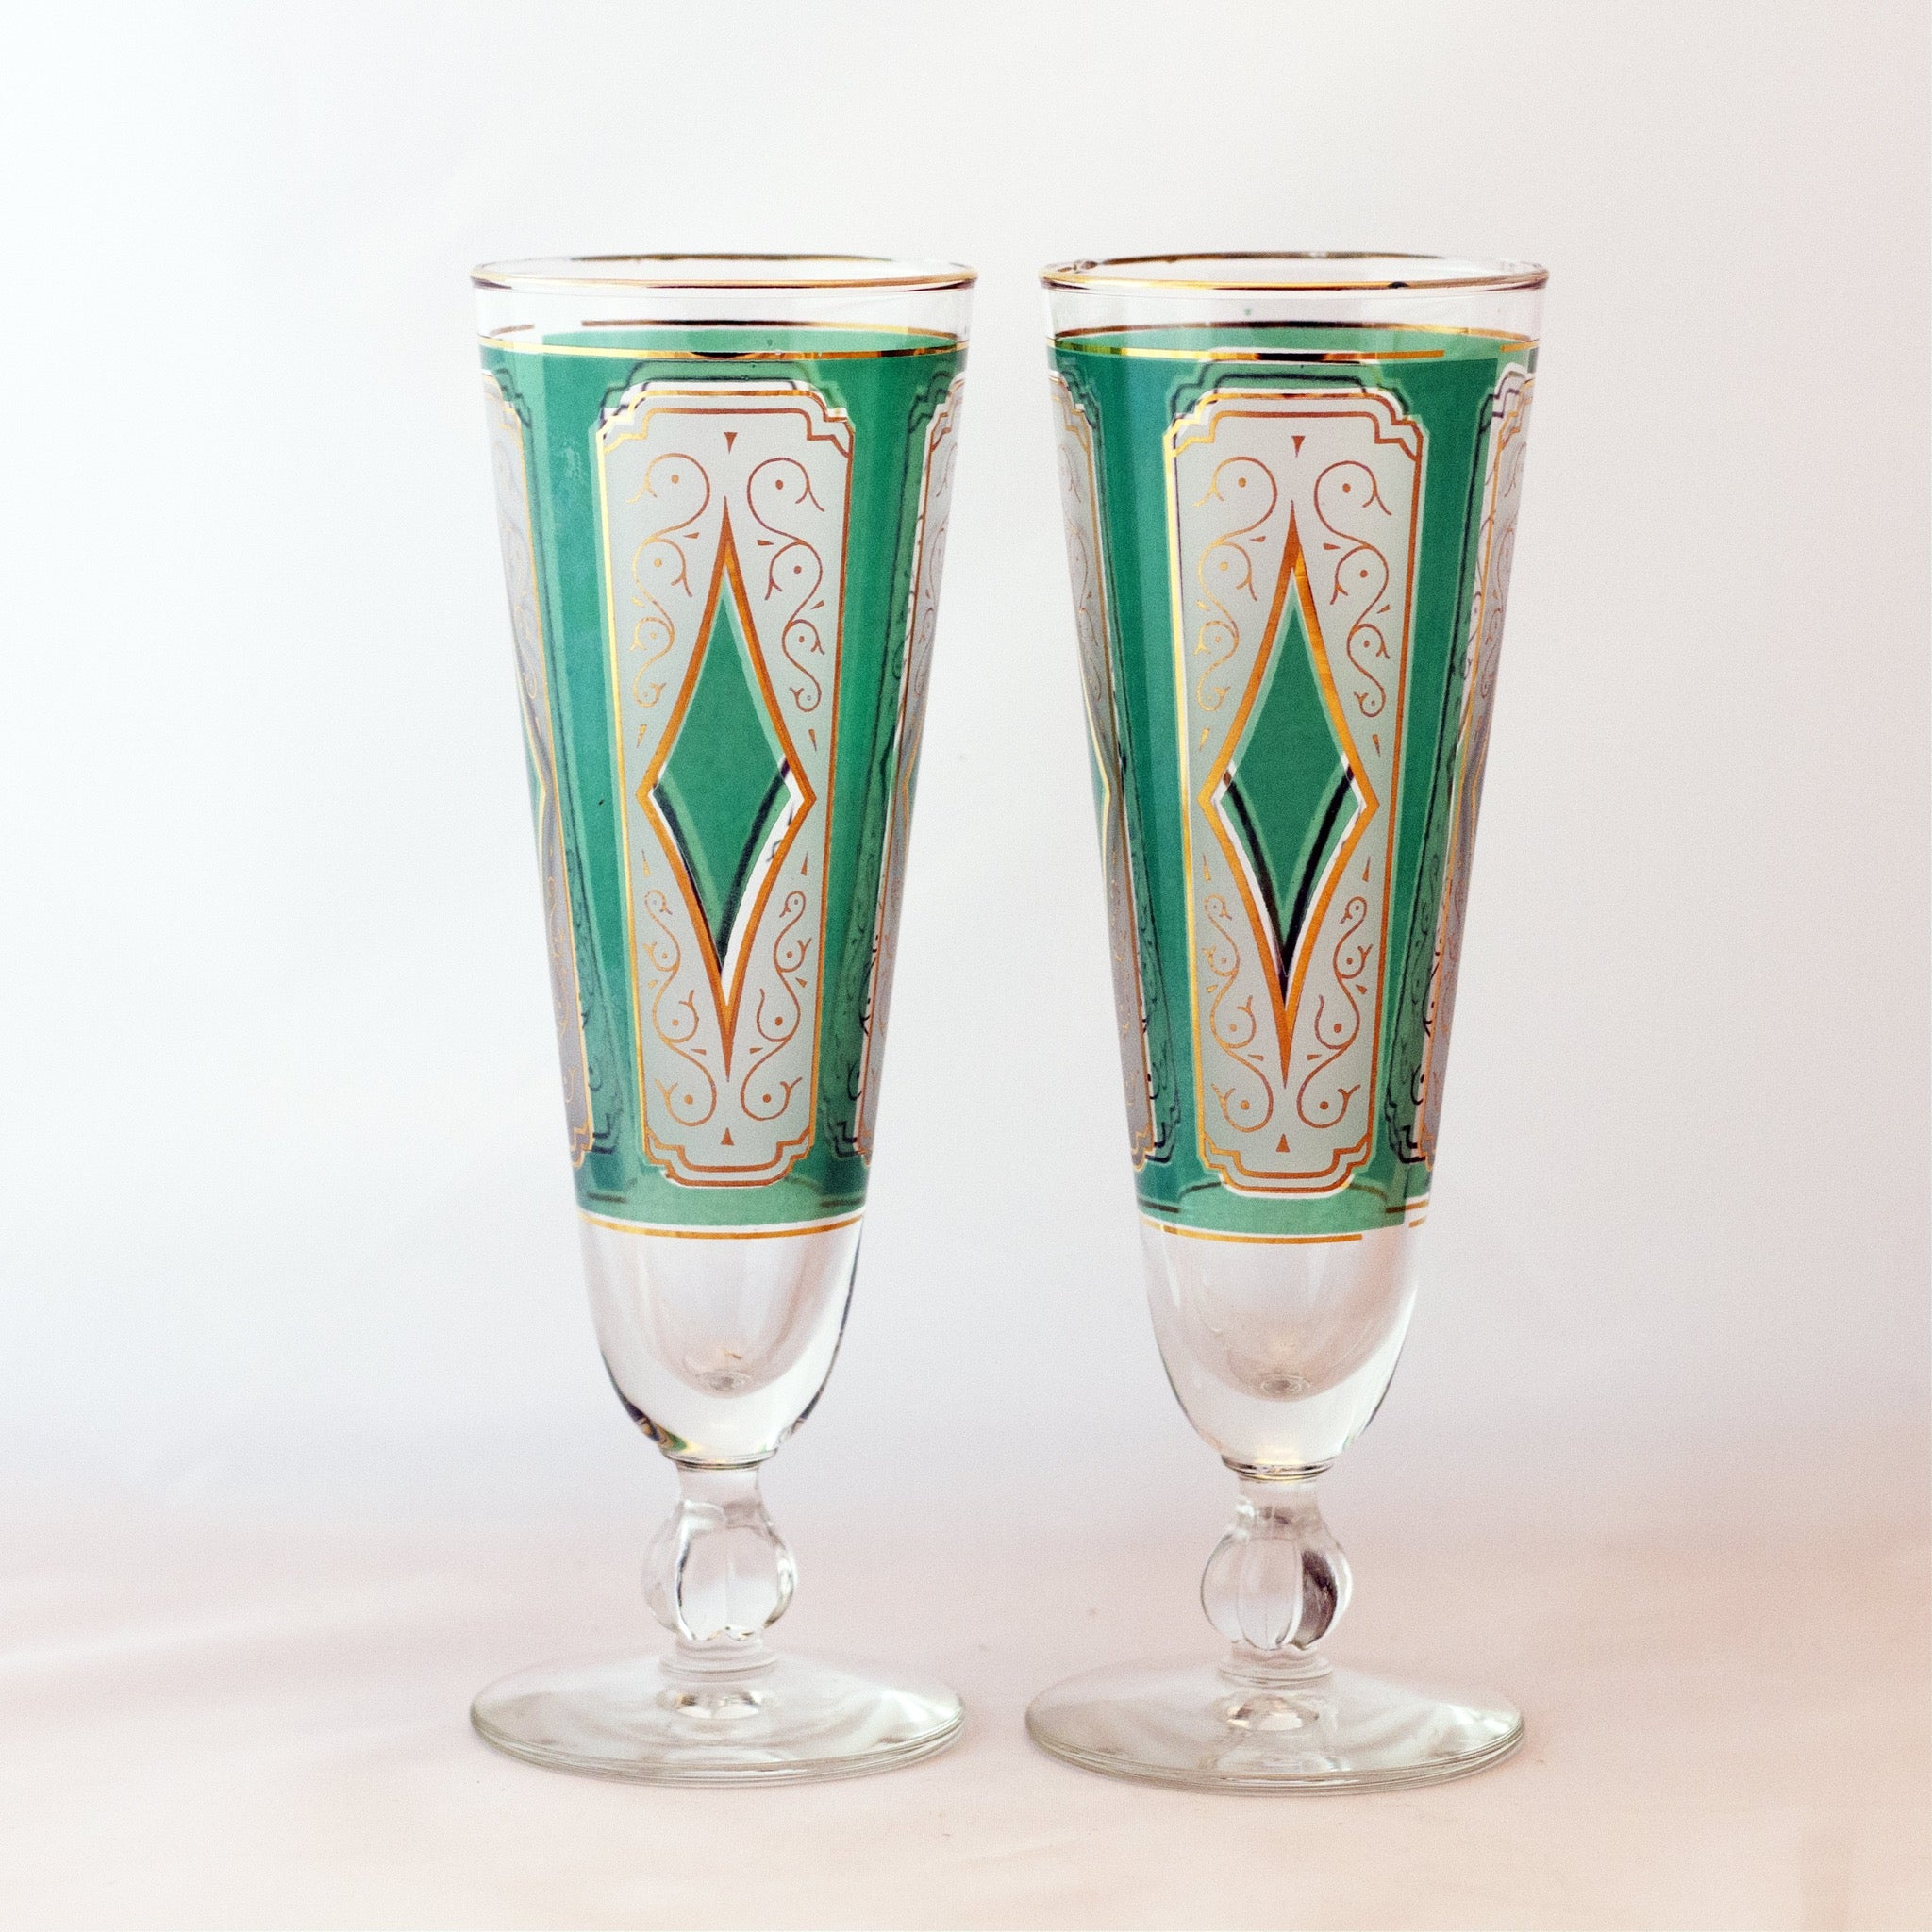 Libbey Glass Retro Barware EMERALD DIAMOND PILSNER GLASSES Set of Two Circa 1950s to 1960s